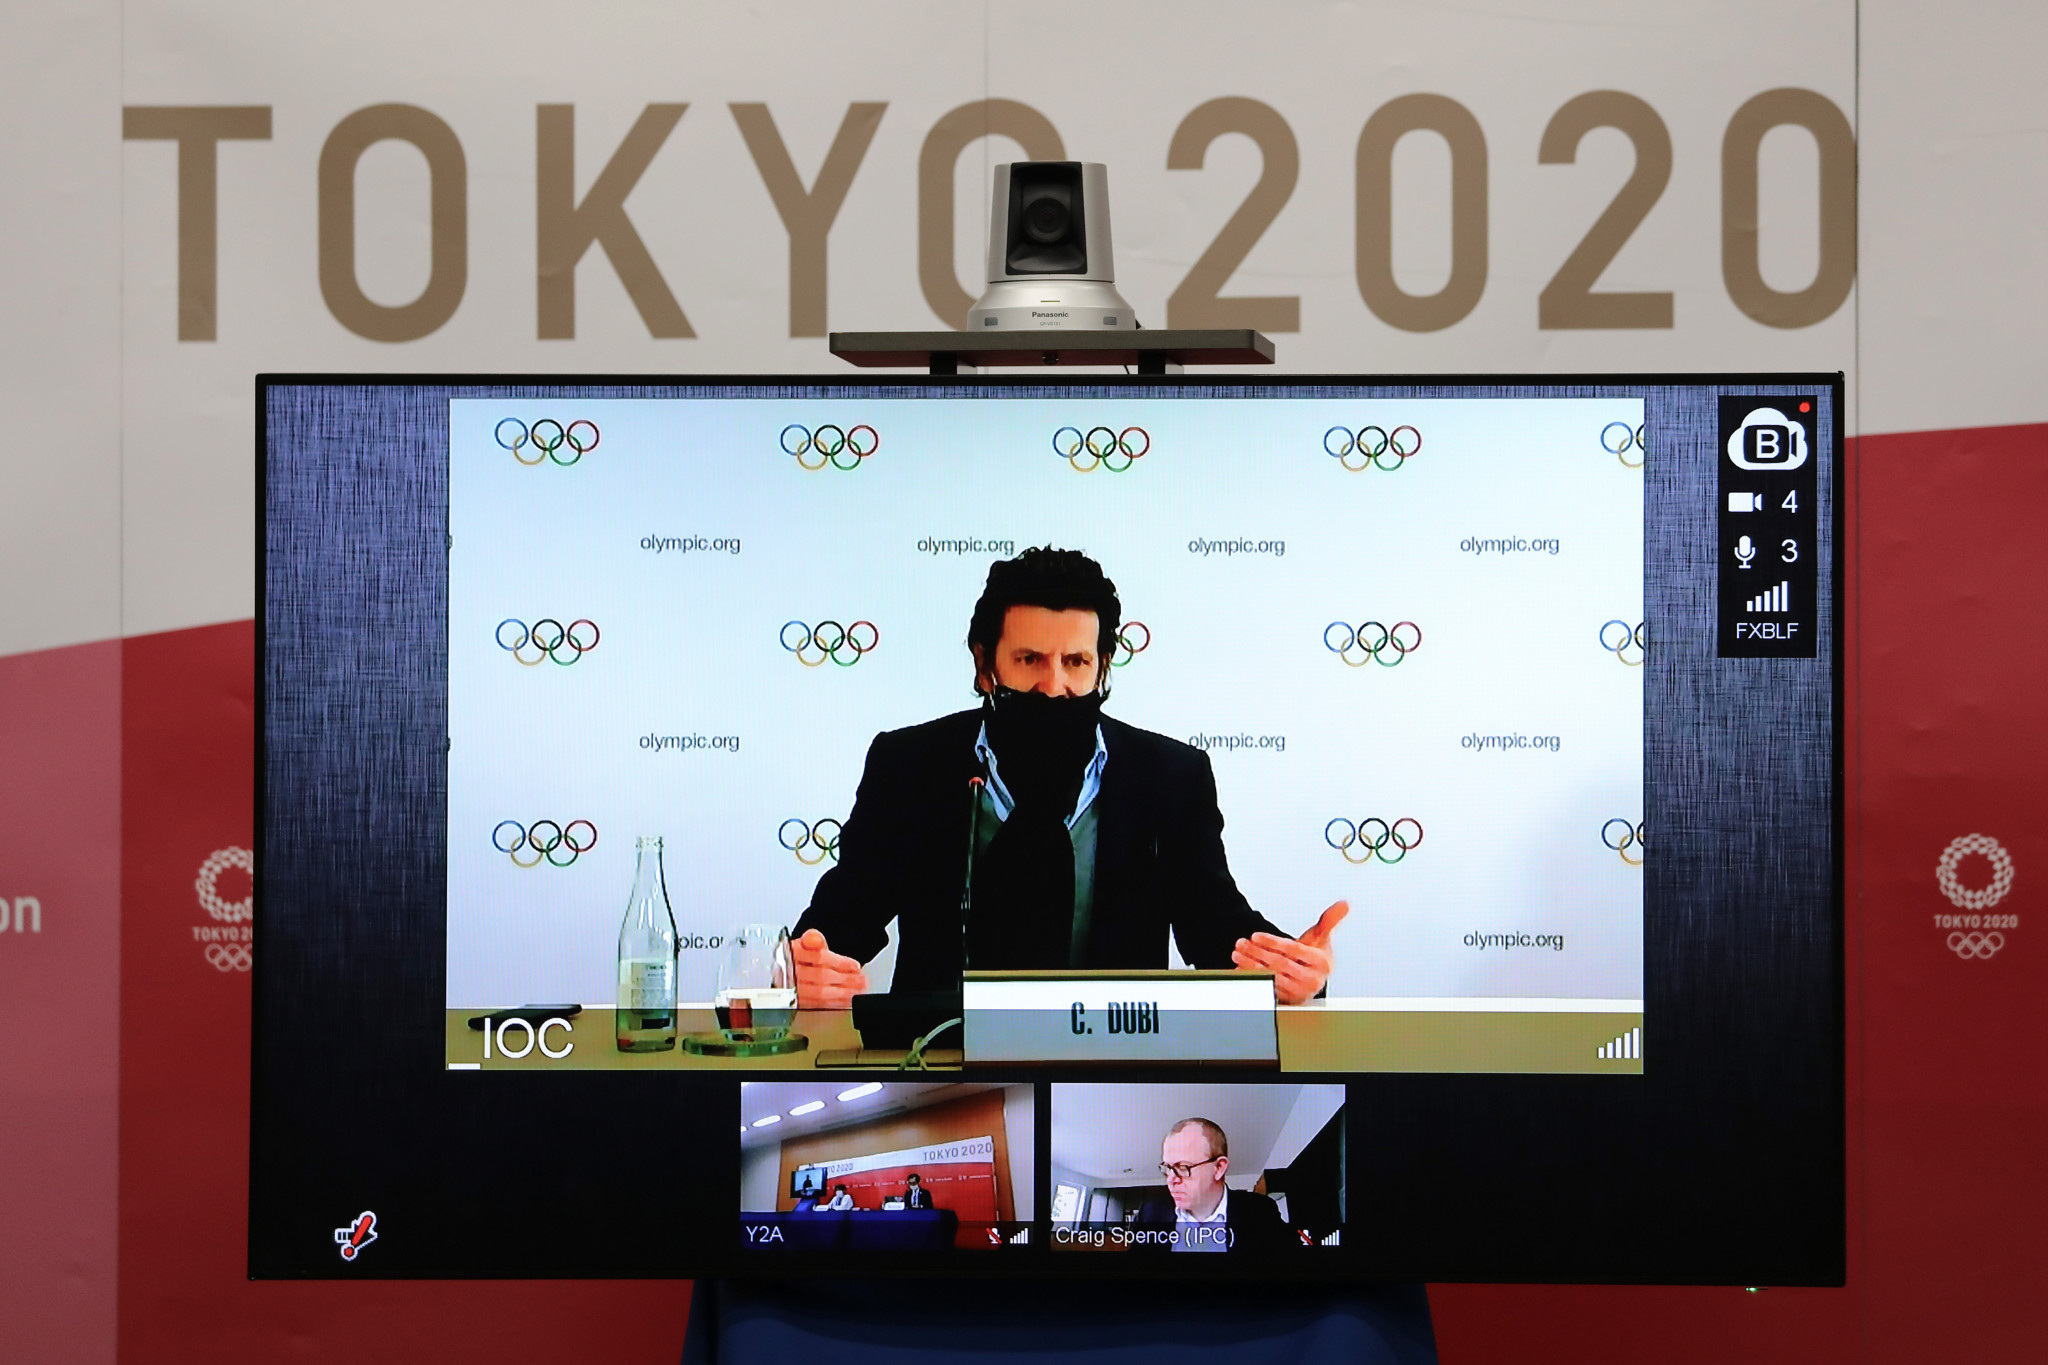 IOC executive director says playbooks have boosted confidence in Tokyo 2020